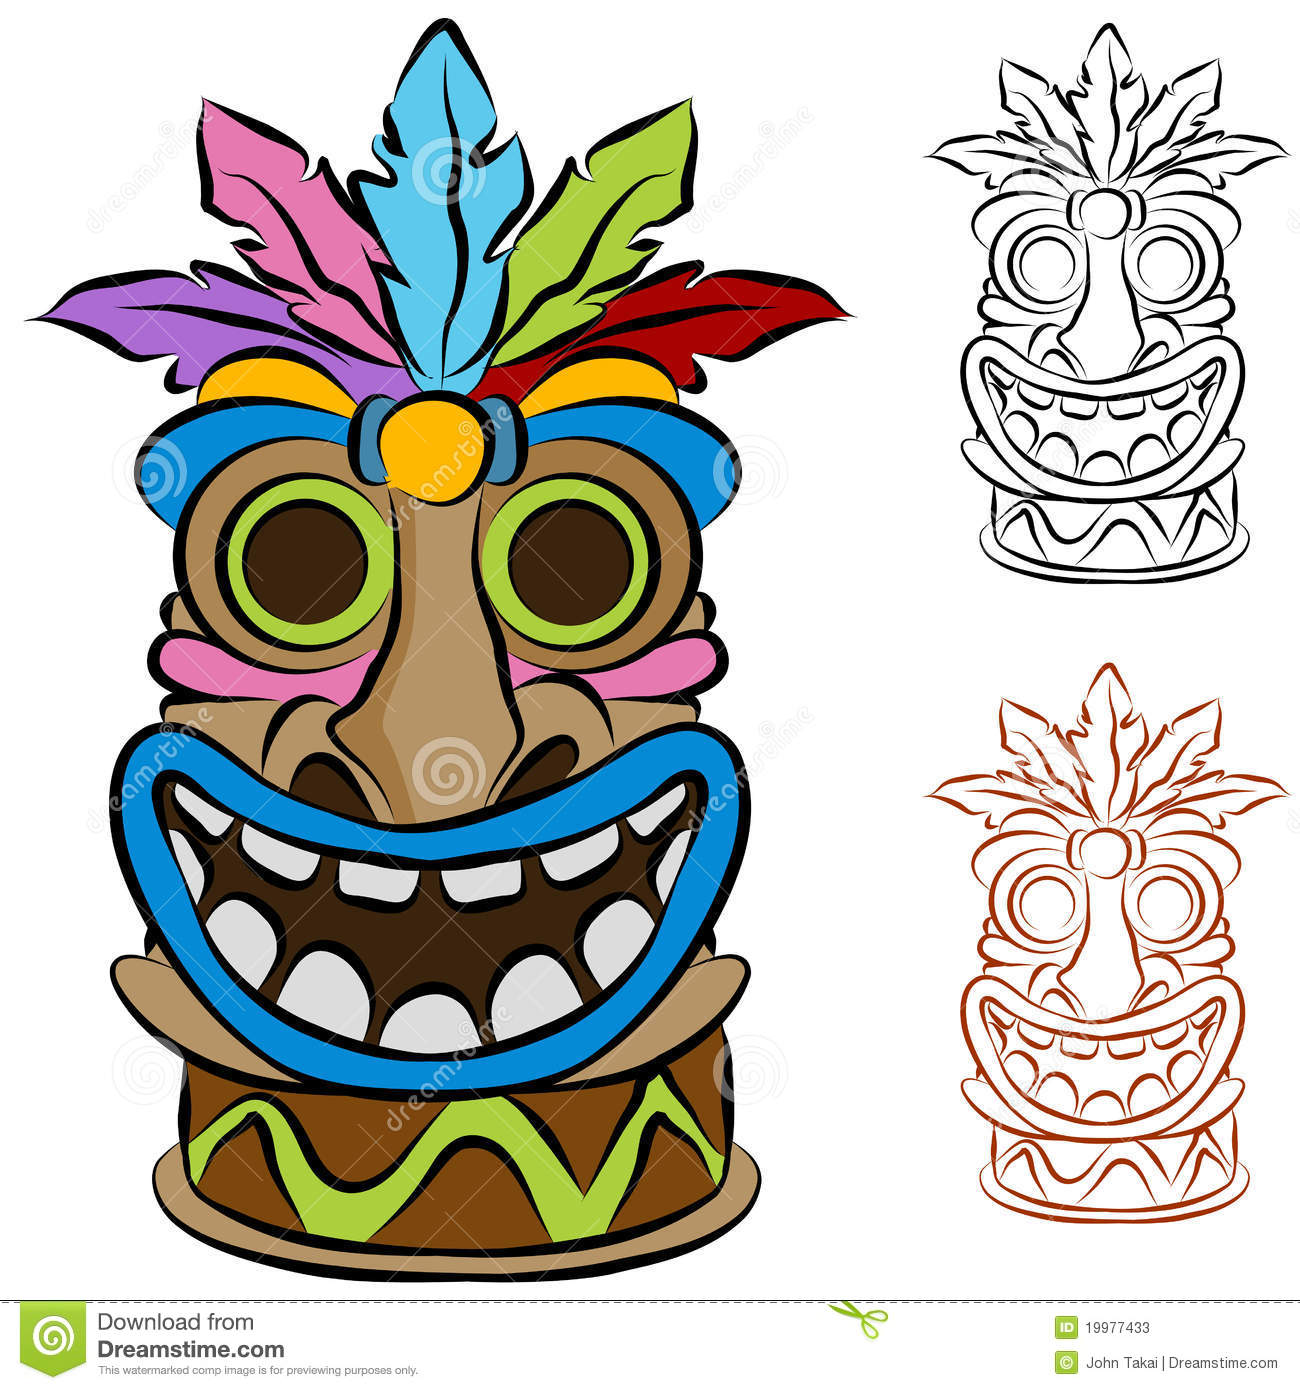 Luau clipart mask. Images free download best